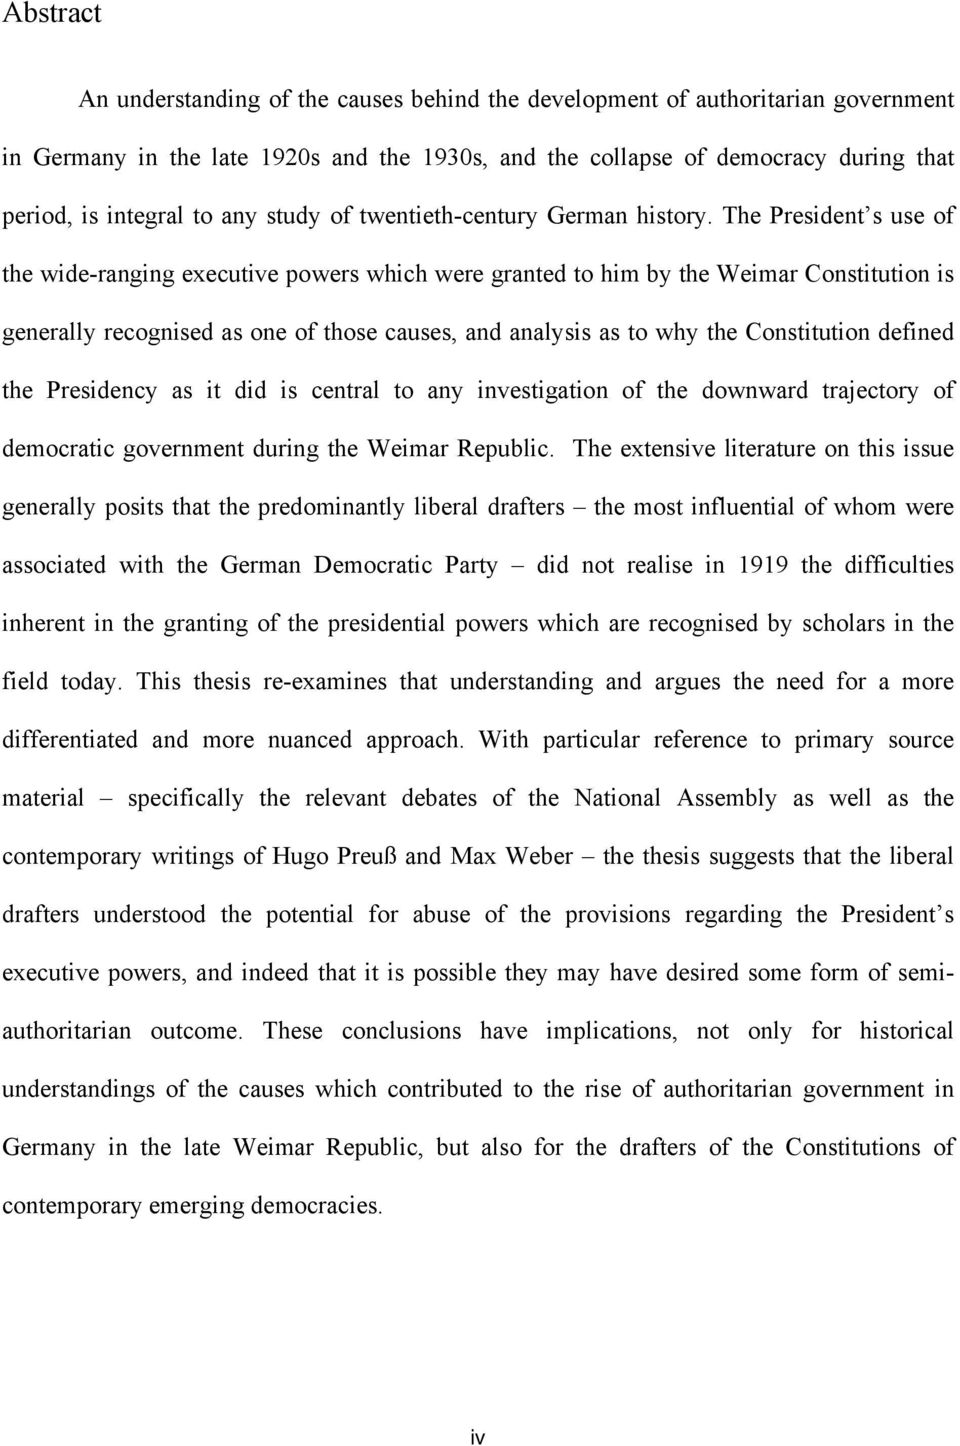 The President s use of the wide-ranging executive powers which were granted to him by the Weimar Constitution is generally recognised as one of those causes, and analysis as to why the Constitution